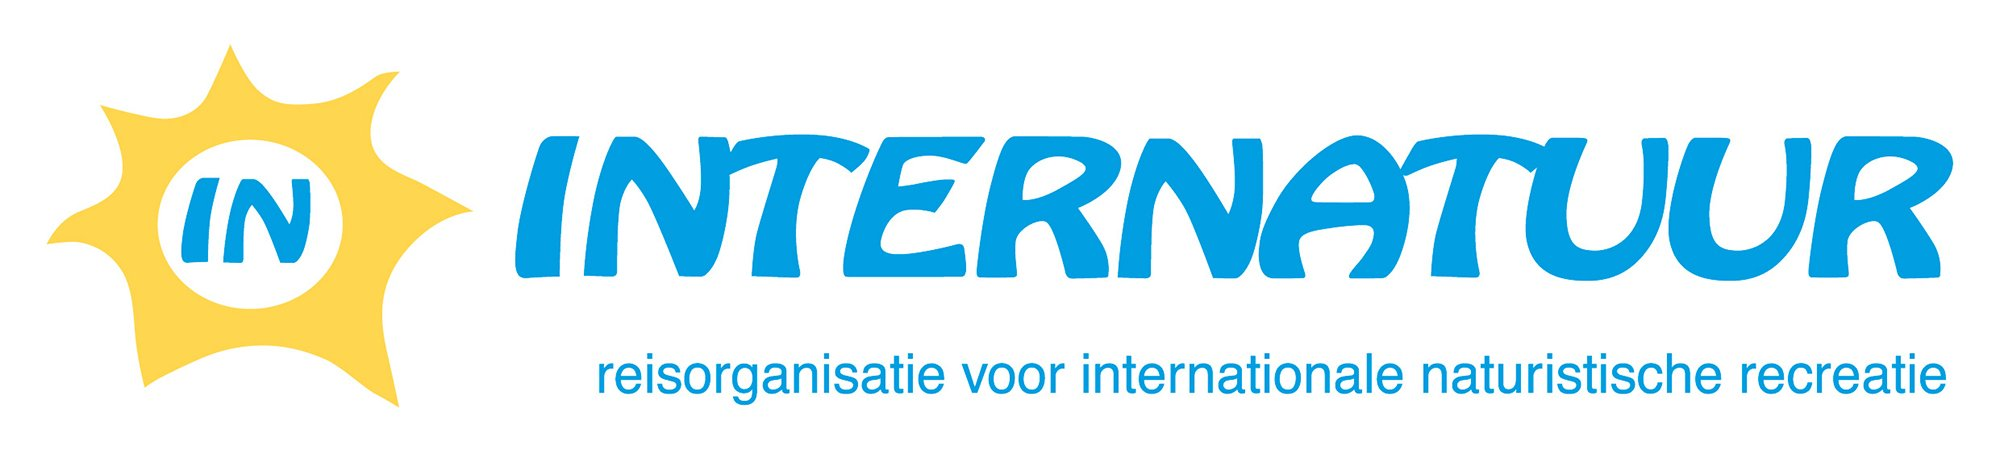 internatuur-logo-2000.jpg